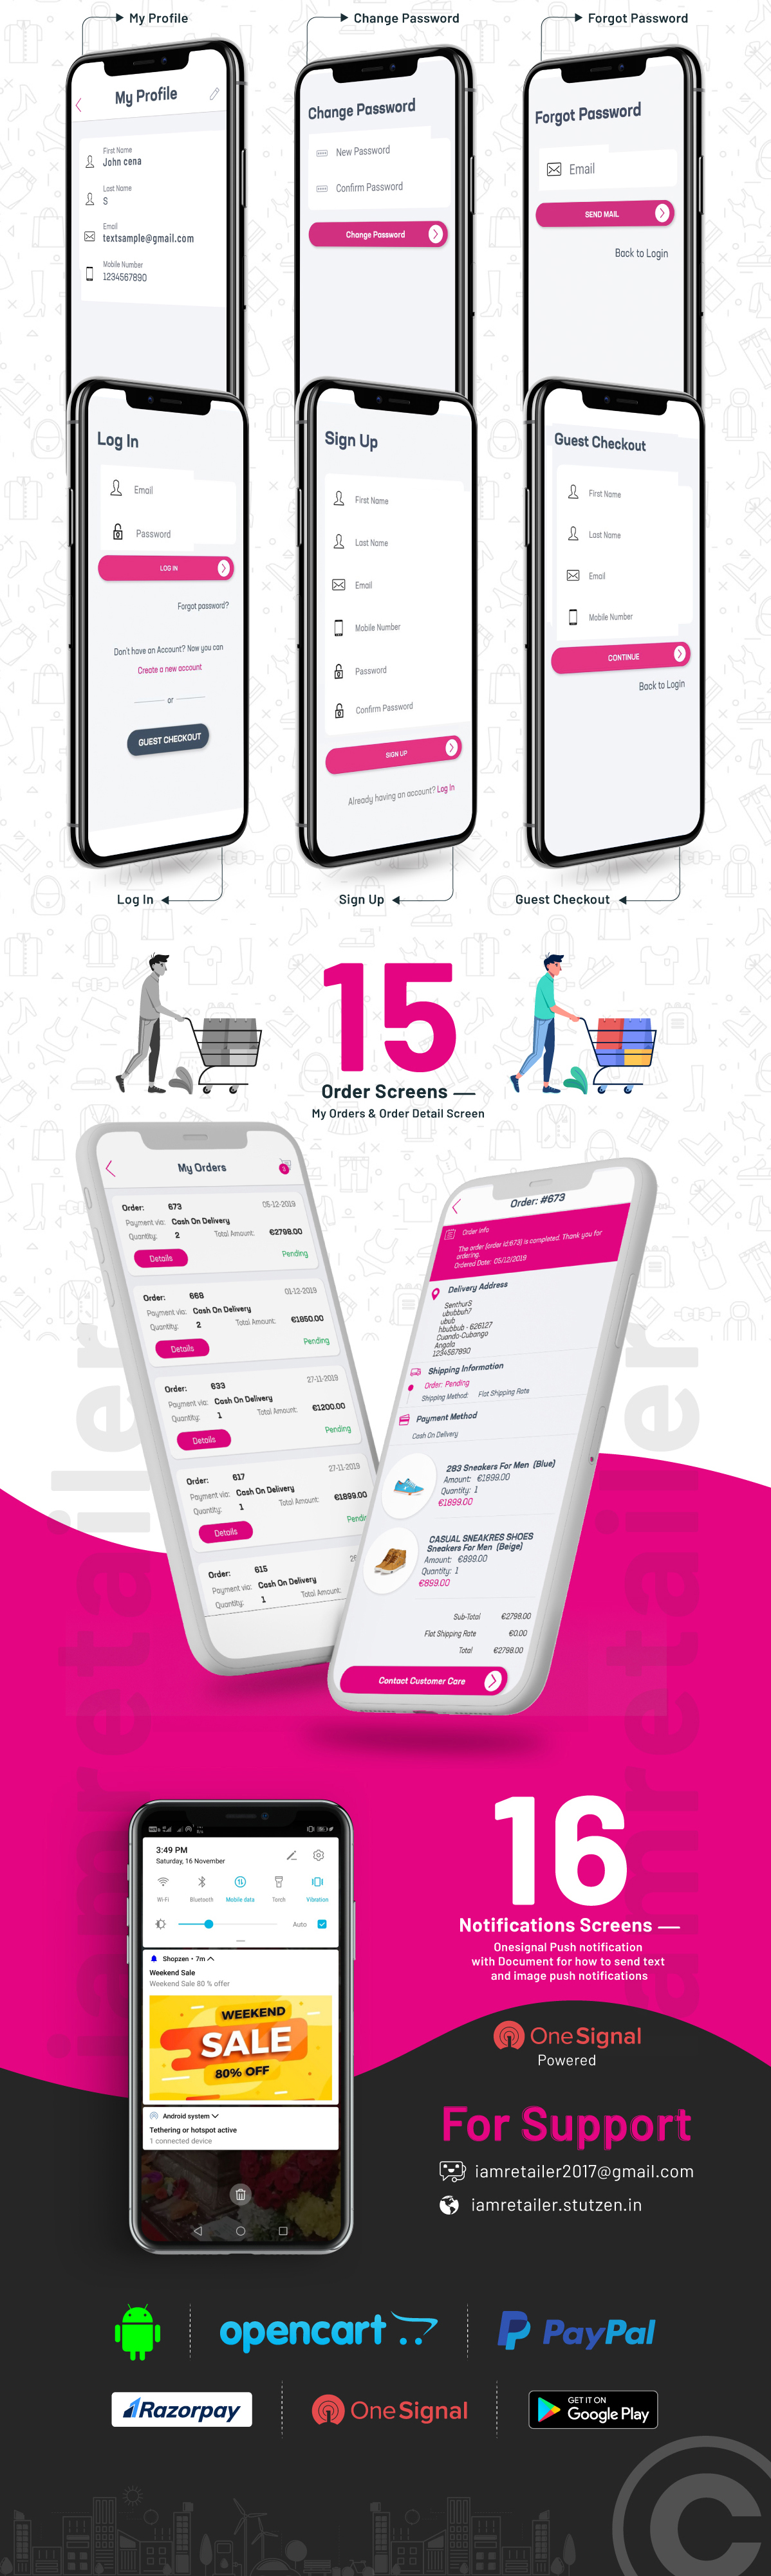 Complete Native Android Shopping App Source Code with Opencart - 8